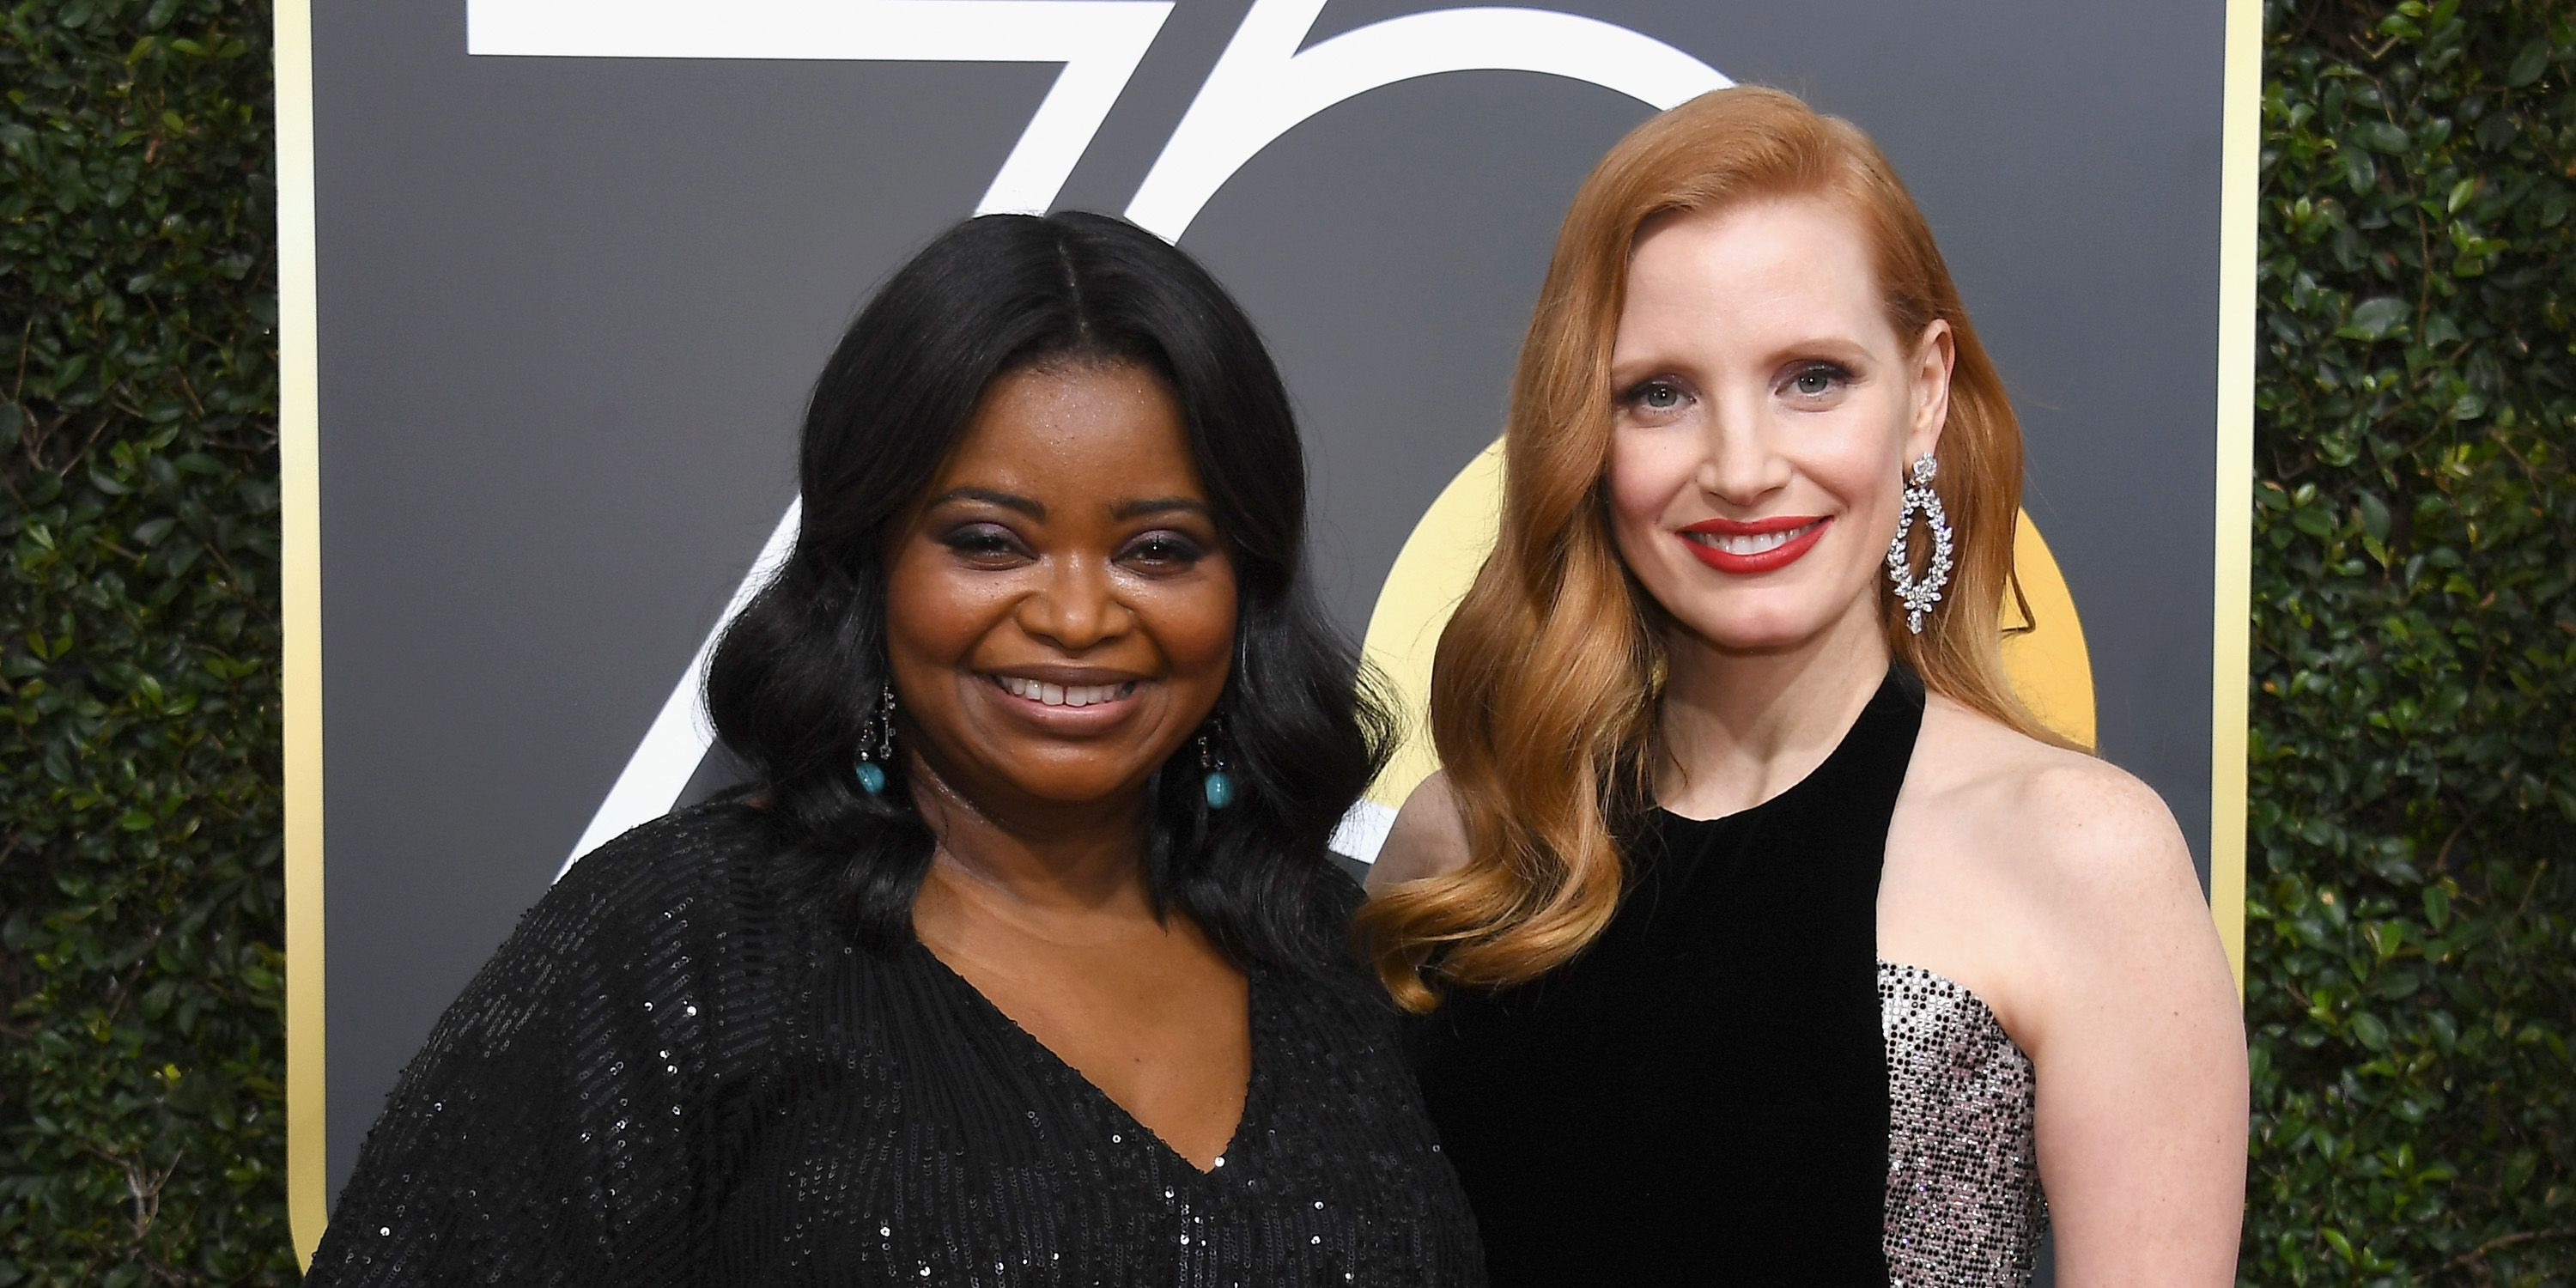 Octavia Spencer, Jessica Chastain